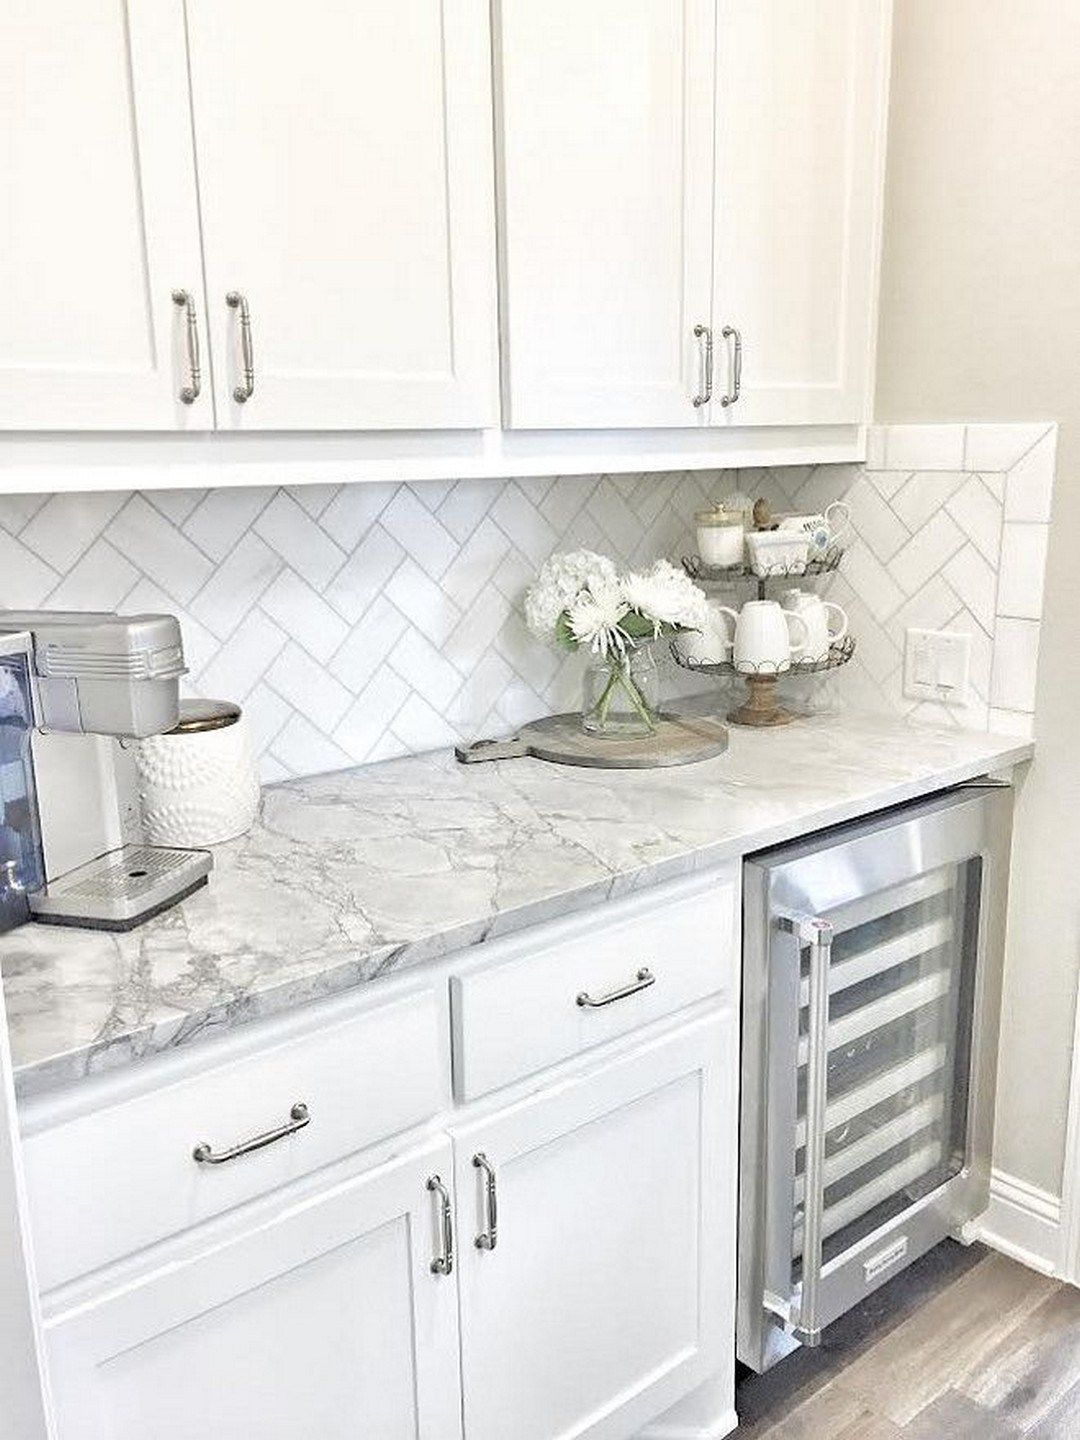 99 Elegant Subway Tile Backsplash Ideas For Your Kitchen Or Bathroom (24)